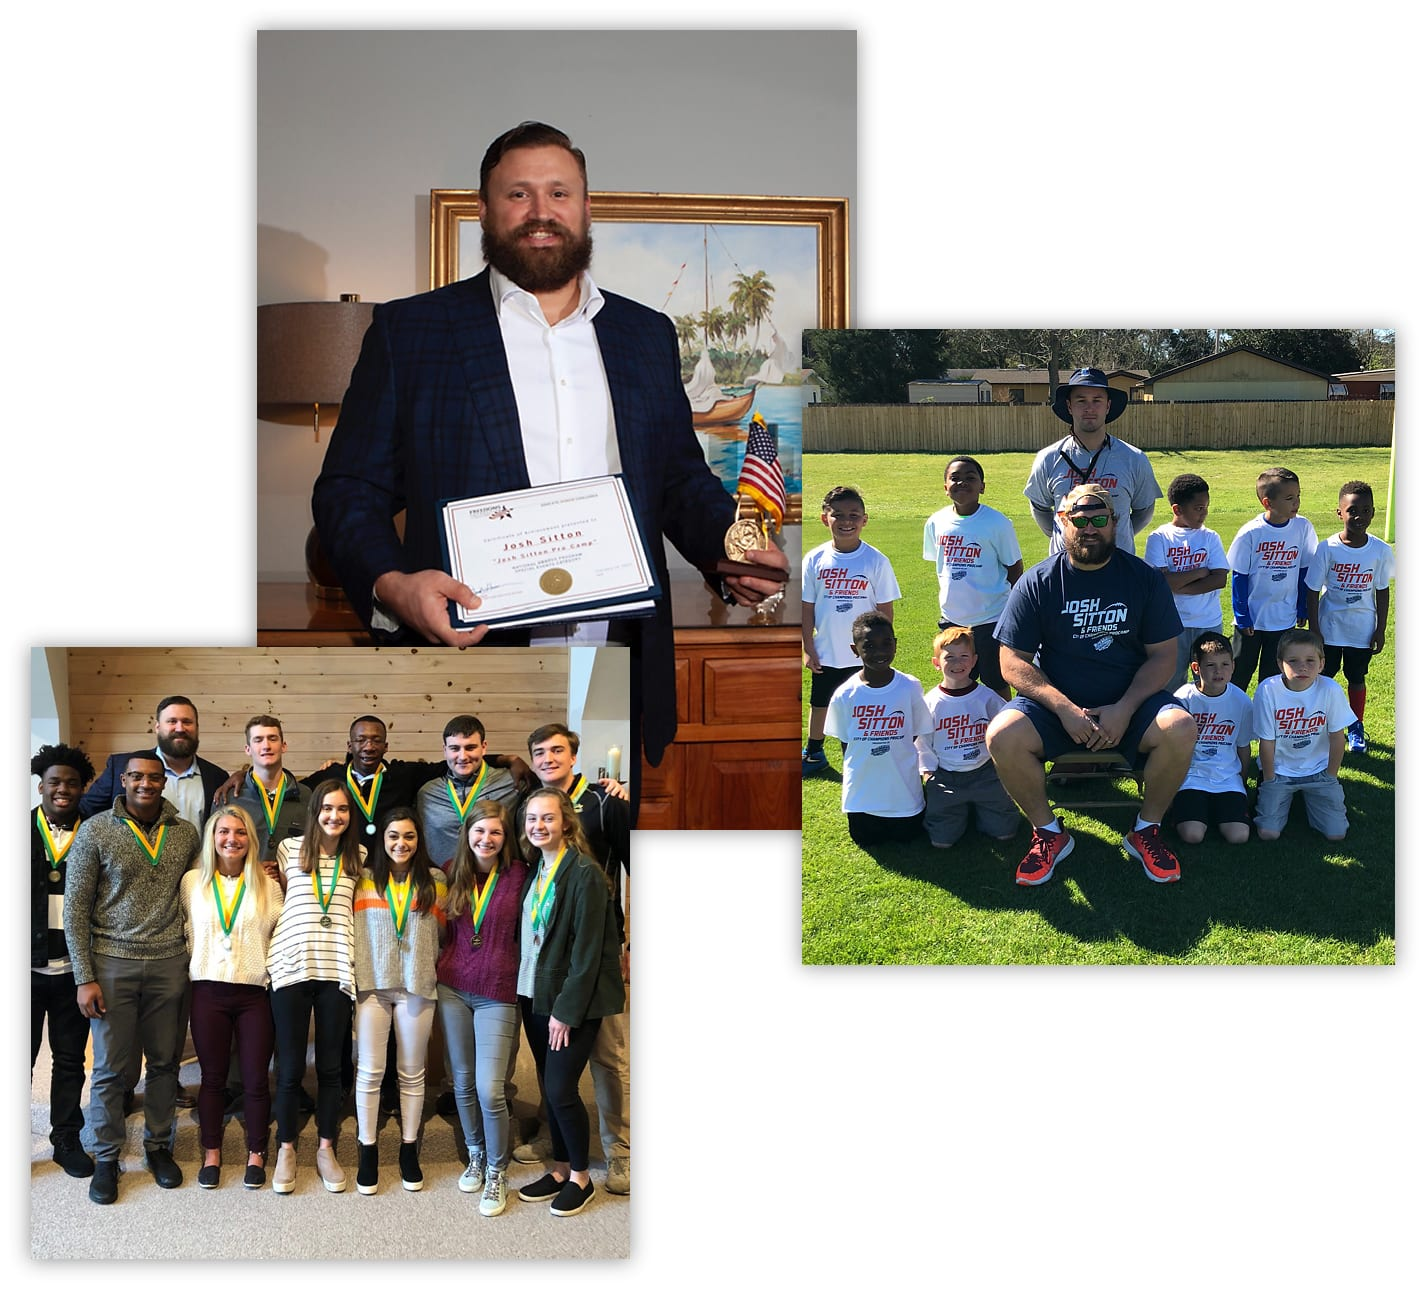 Photo of co-founder of Bear General Contractors Josh Sitton posing with an award with two more photos of Josh Sitton posing with community youths